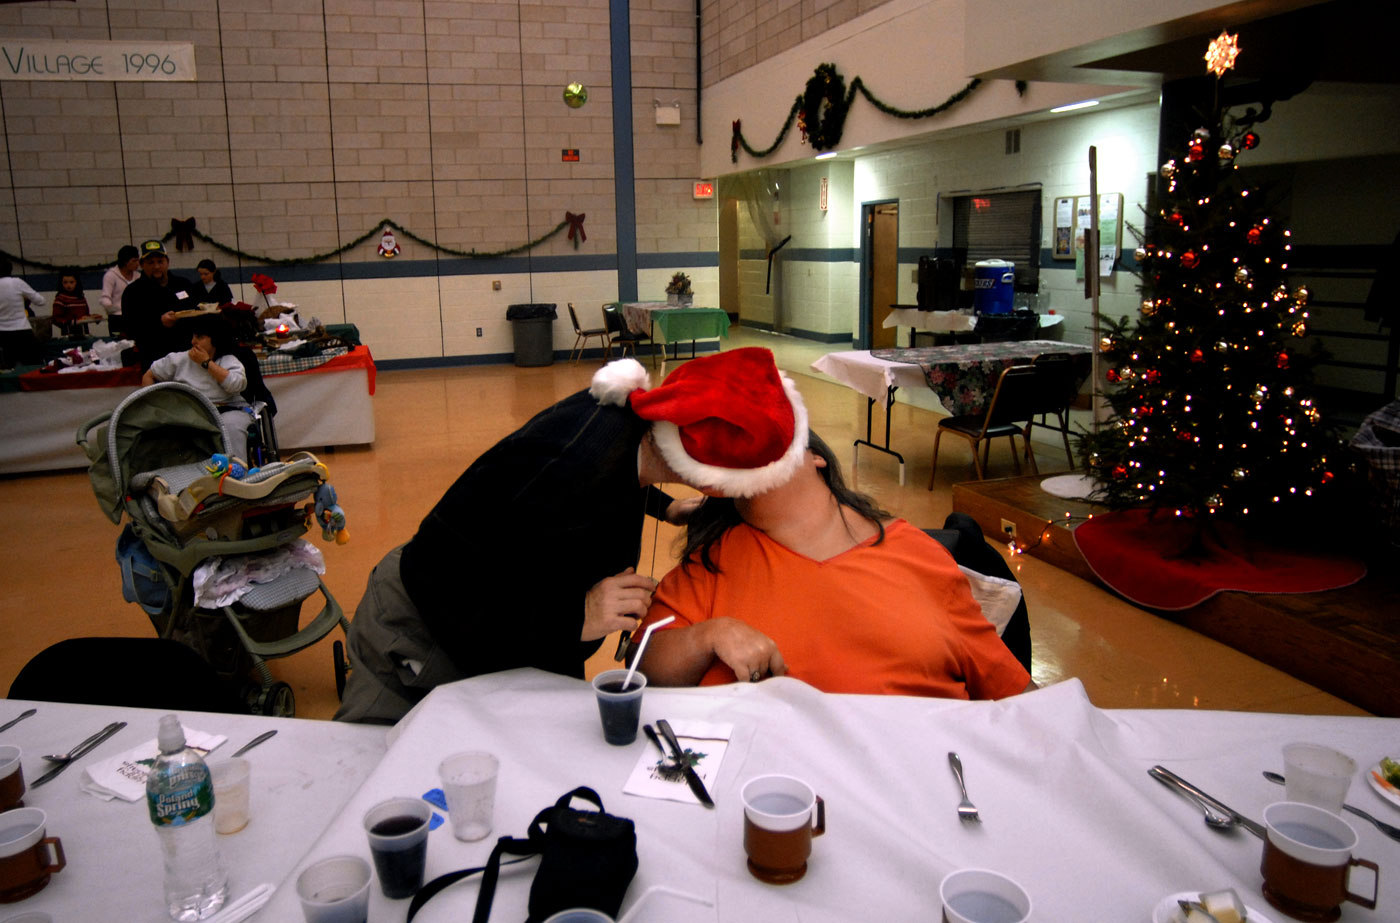 Tom leans over to give Theresa a big smooch during a village-wide Christmas dinner celebration in New Horizon's Great Hall.